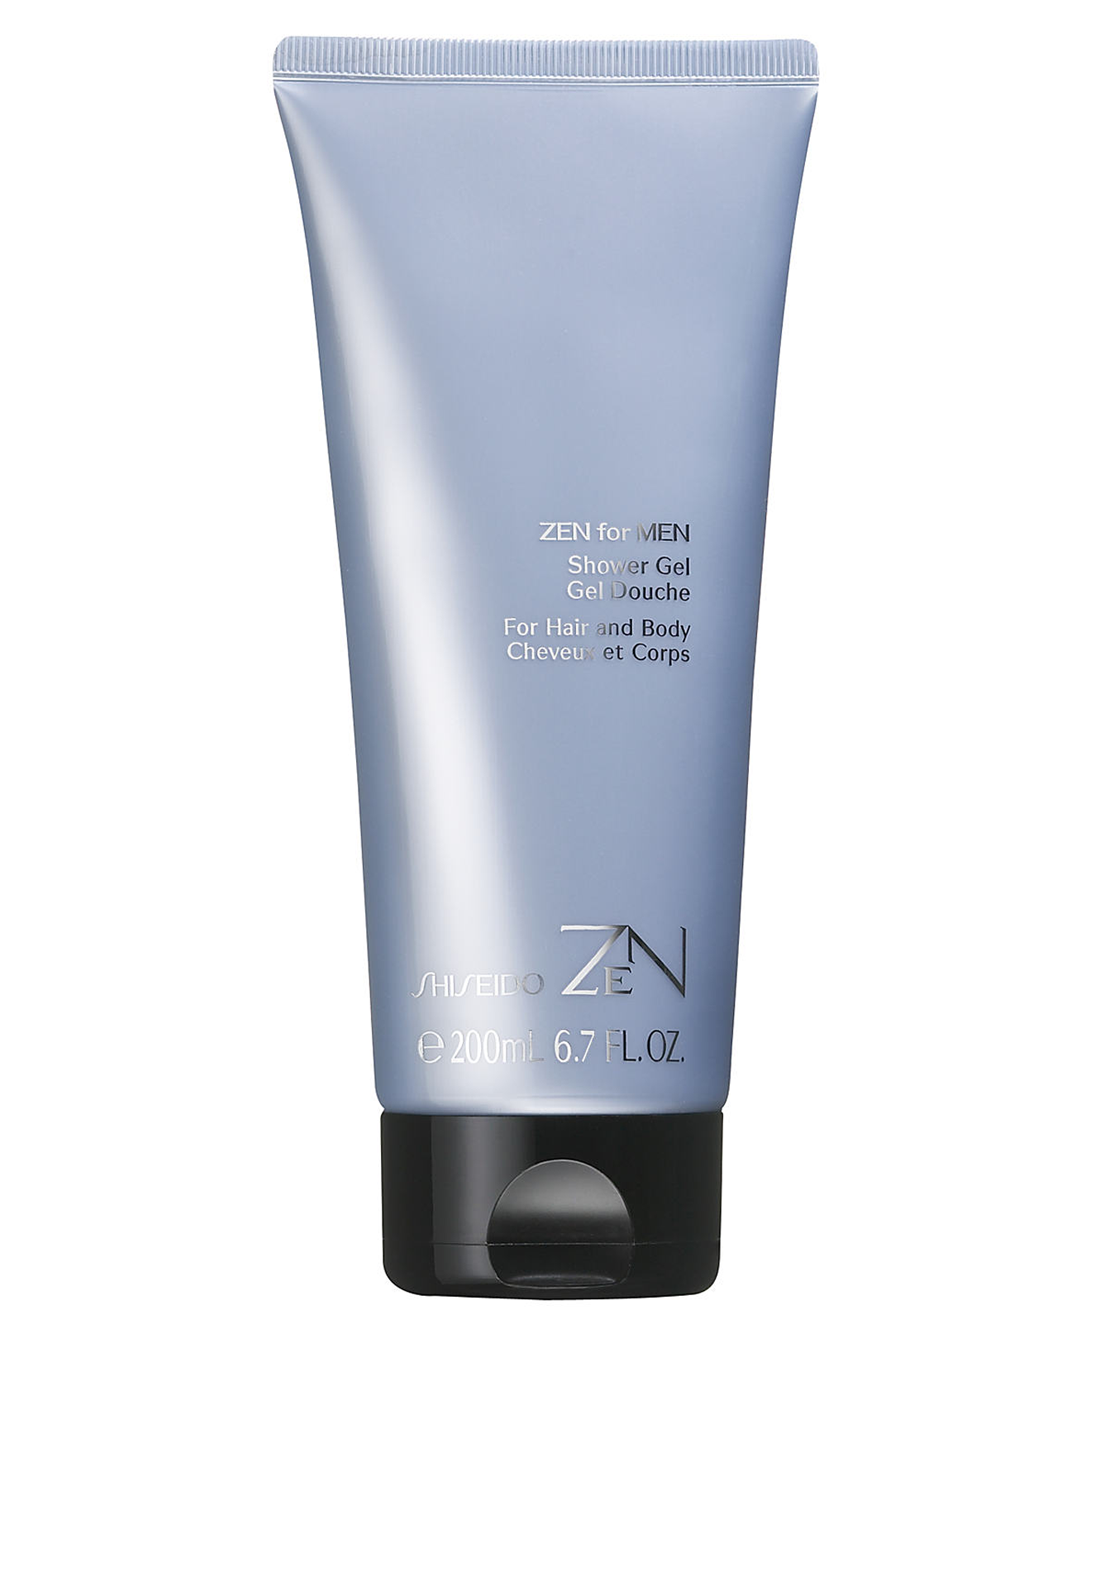 Shiseido Zen for Men Shower Gel, 200ml